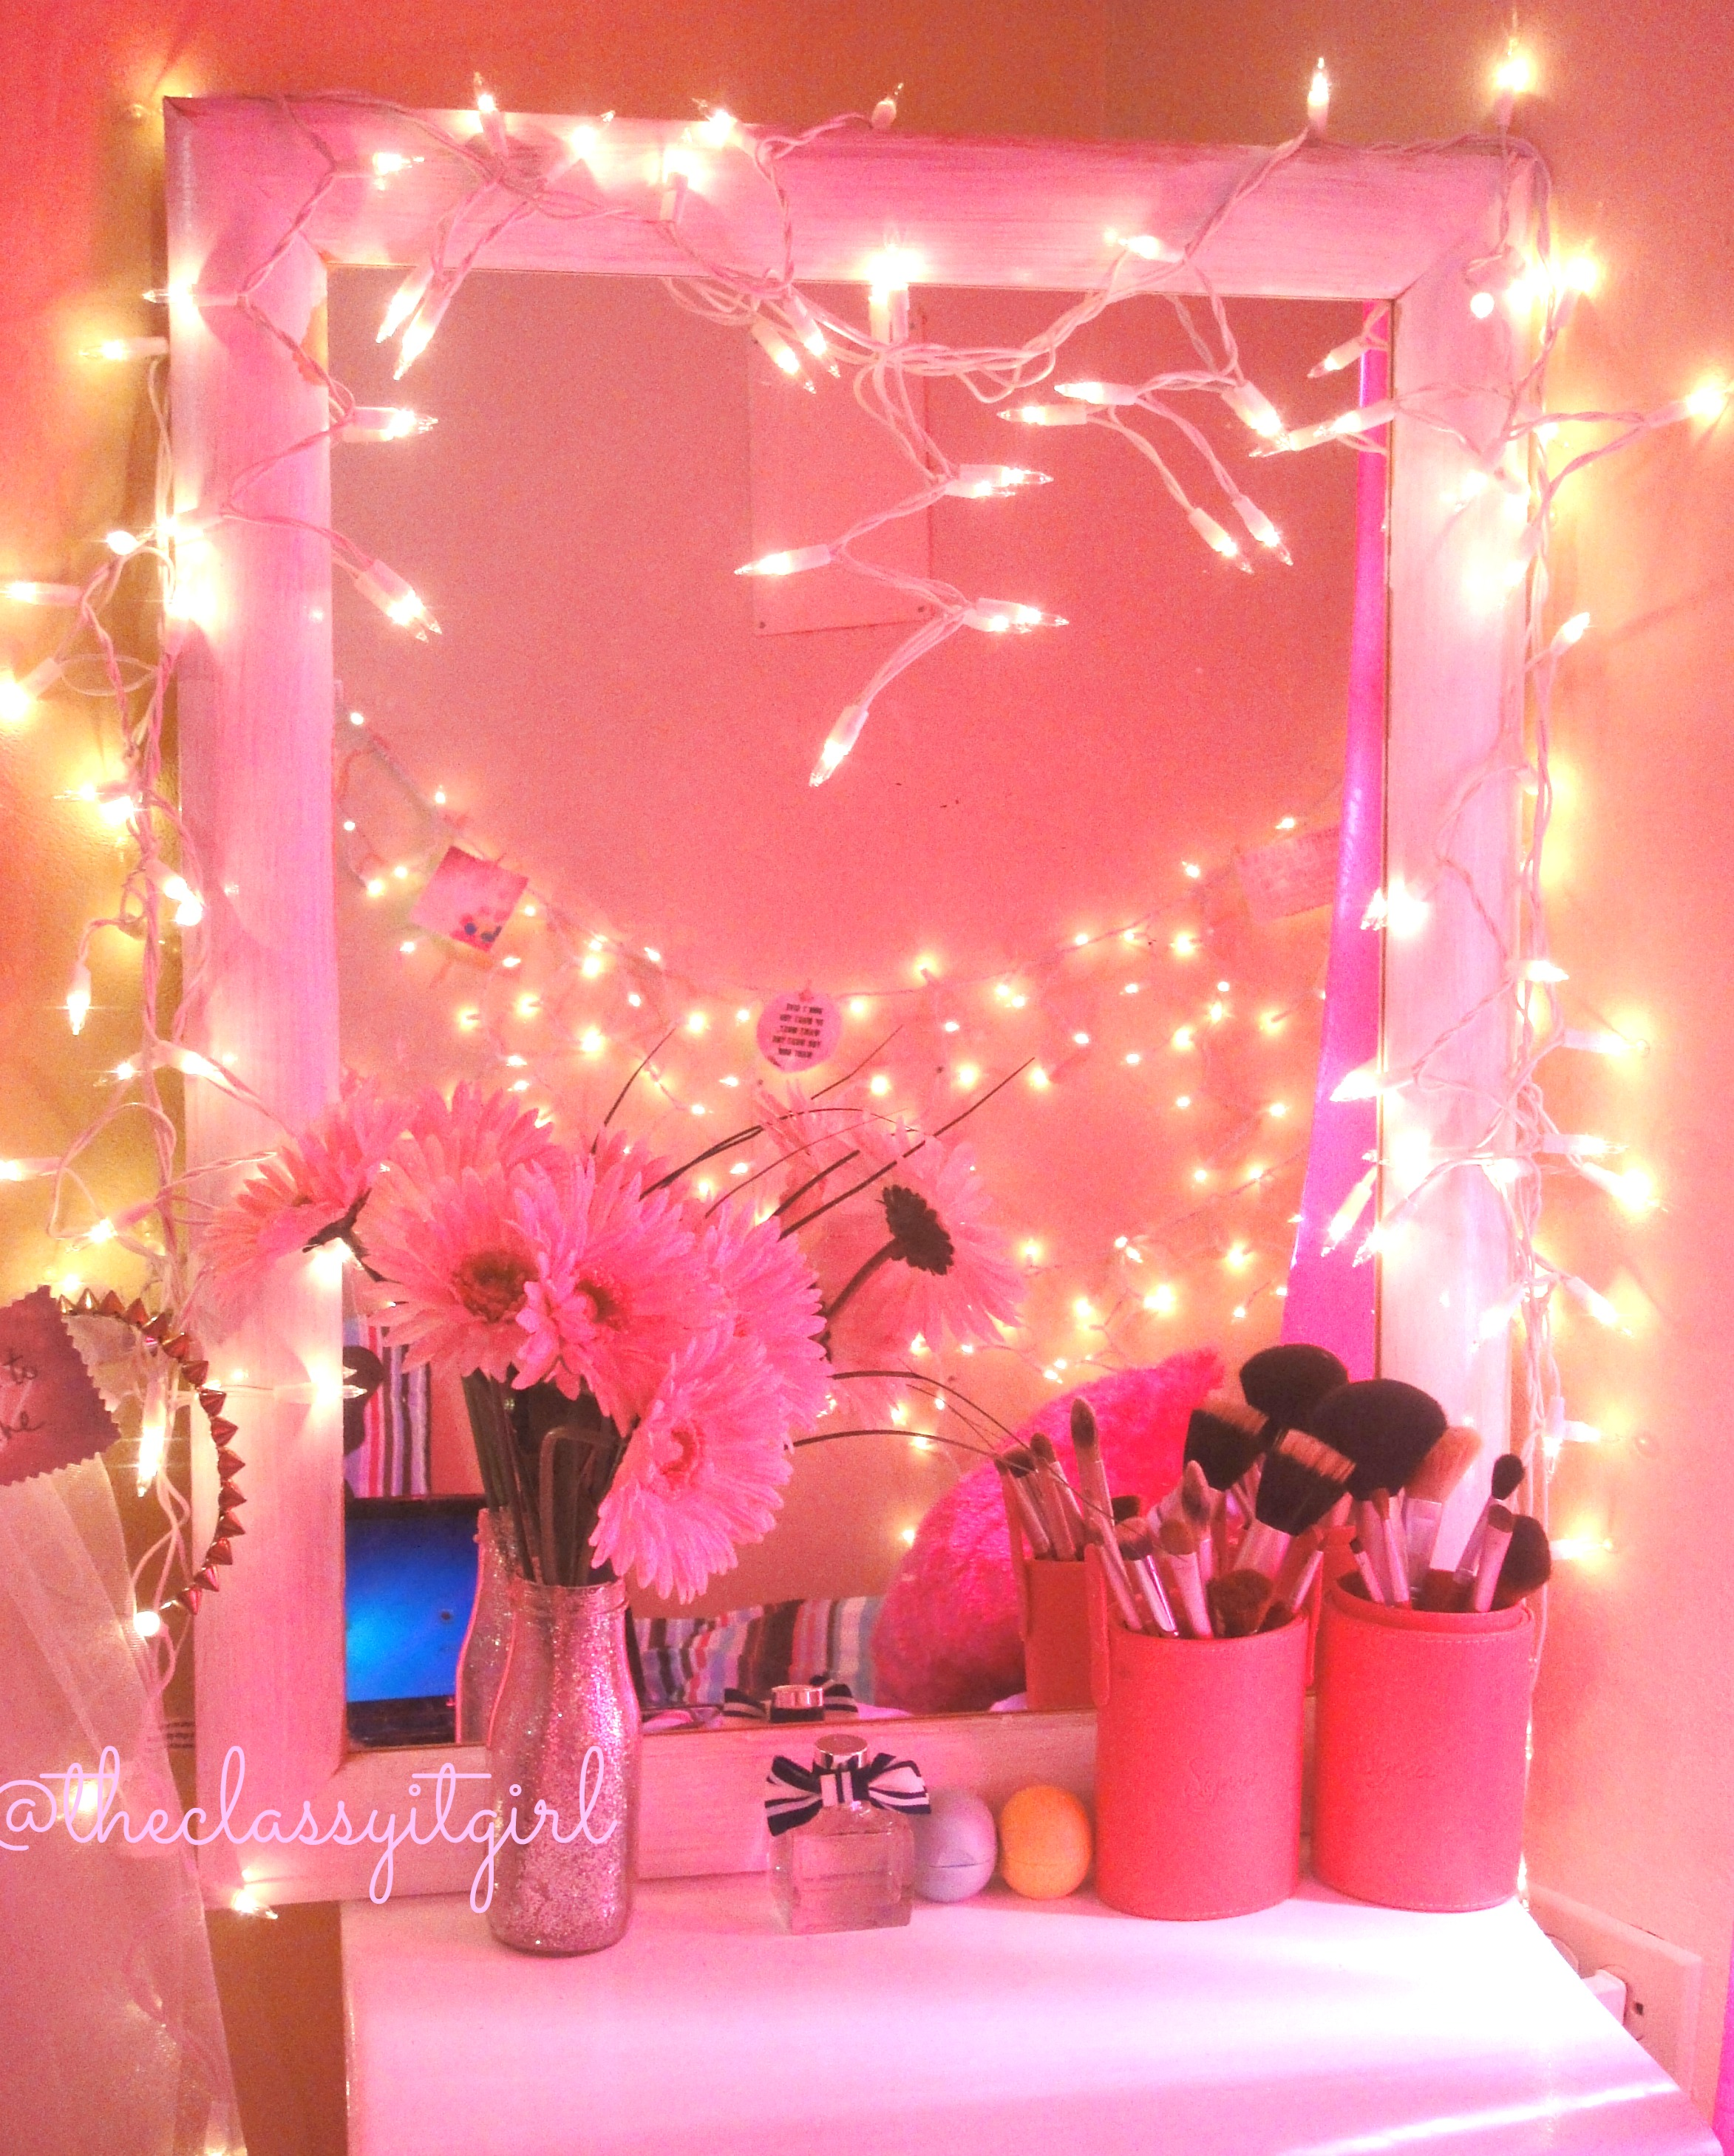 Stuff For Room Decor Dormspiration Diy Room Décor The Classy It Girl